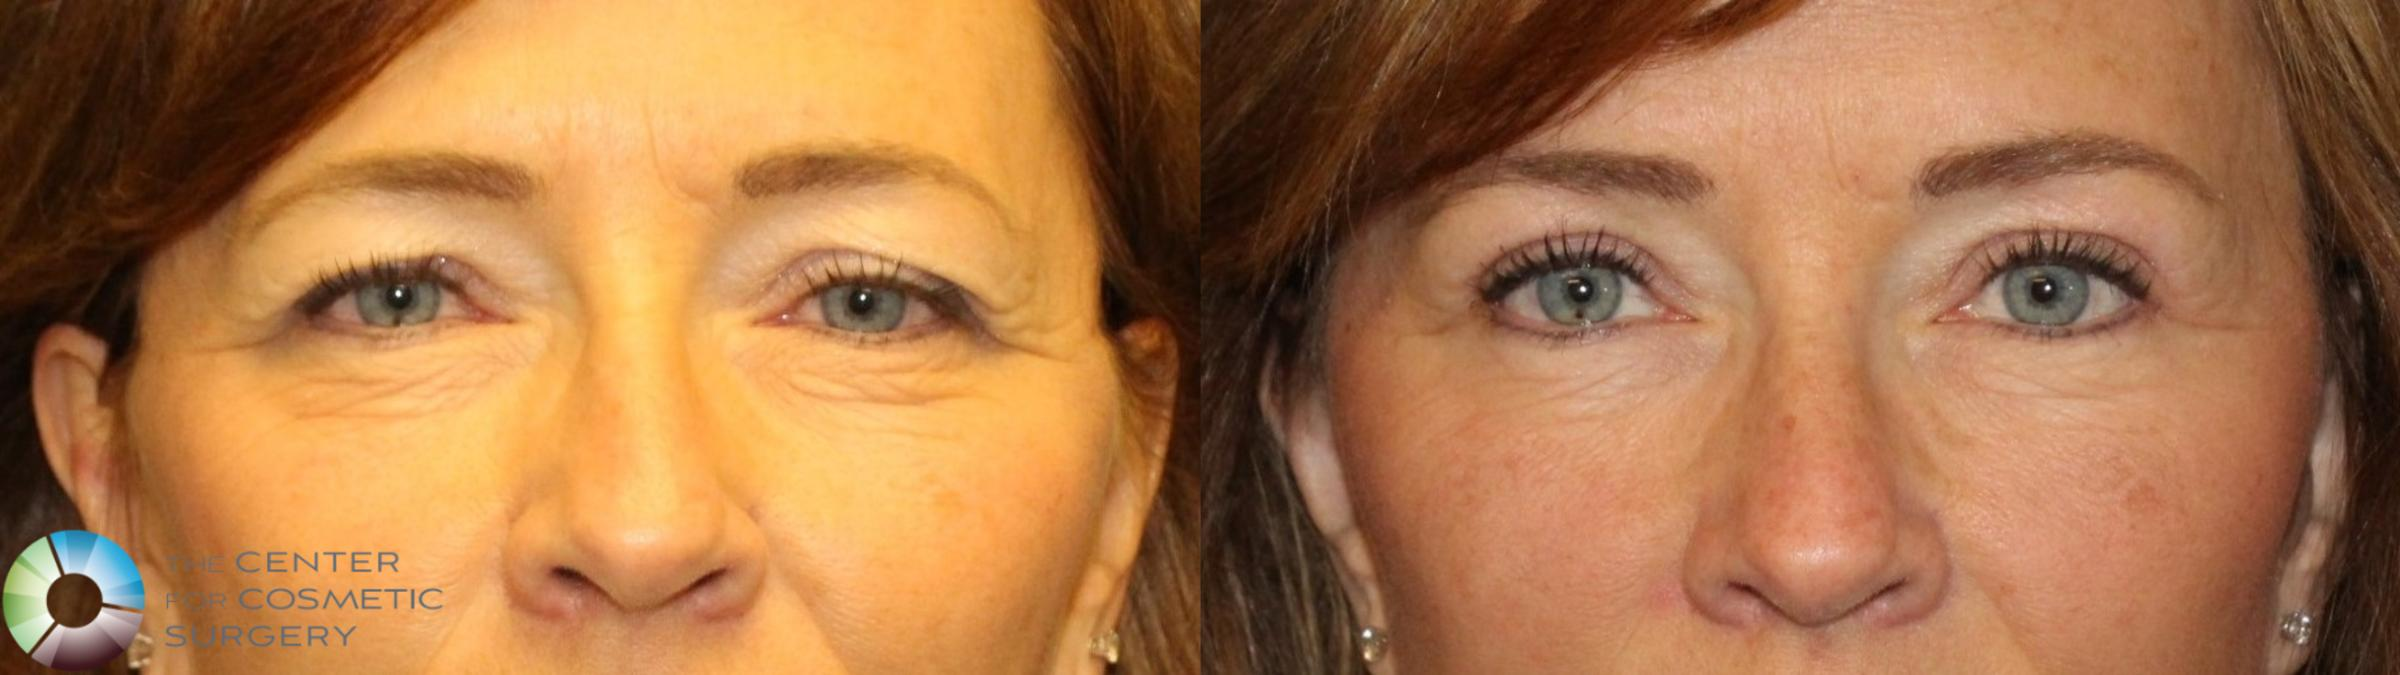 Mini Brow Lift Case 11500 Before & After brow eyes front | Denver & Golden, CO | The Center for Cosmetic Surgery